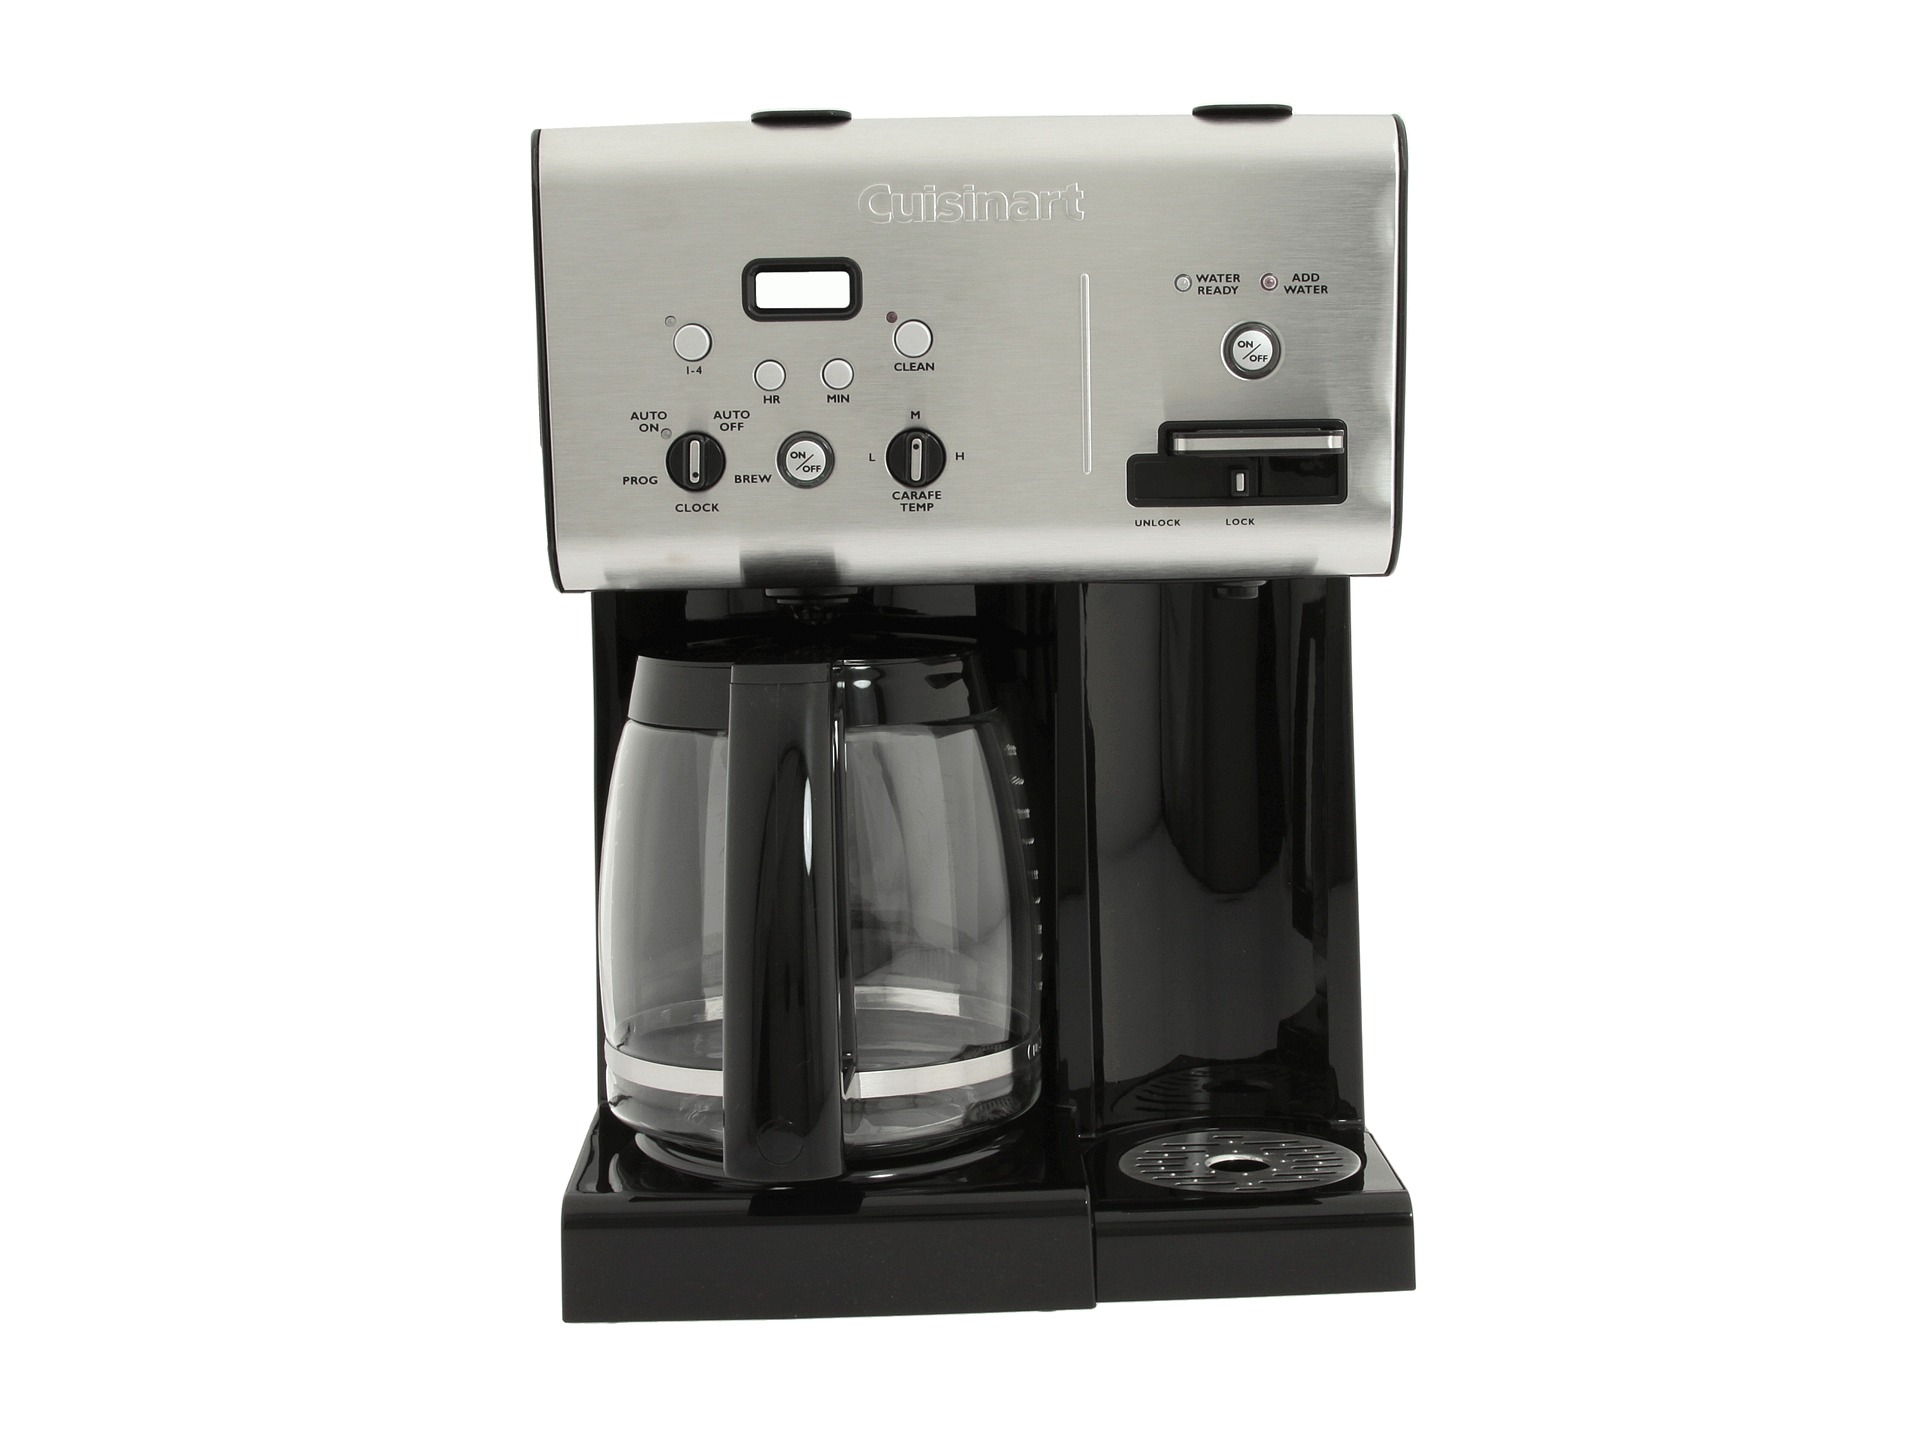 Cuisinart 10 Cup Coffee Maker With Hot Water System : Cuisinart Chw 12 Coffee Plus 12 Cup Coffee Maker And Hot Water System Shipped Free at Zappos